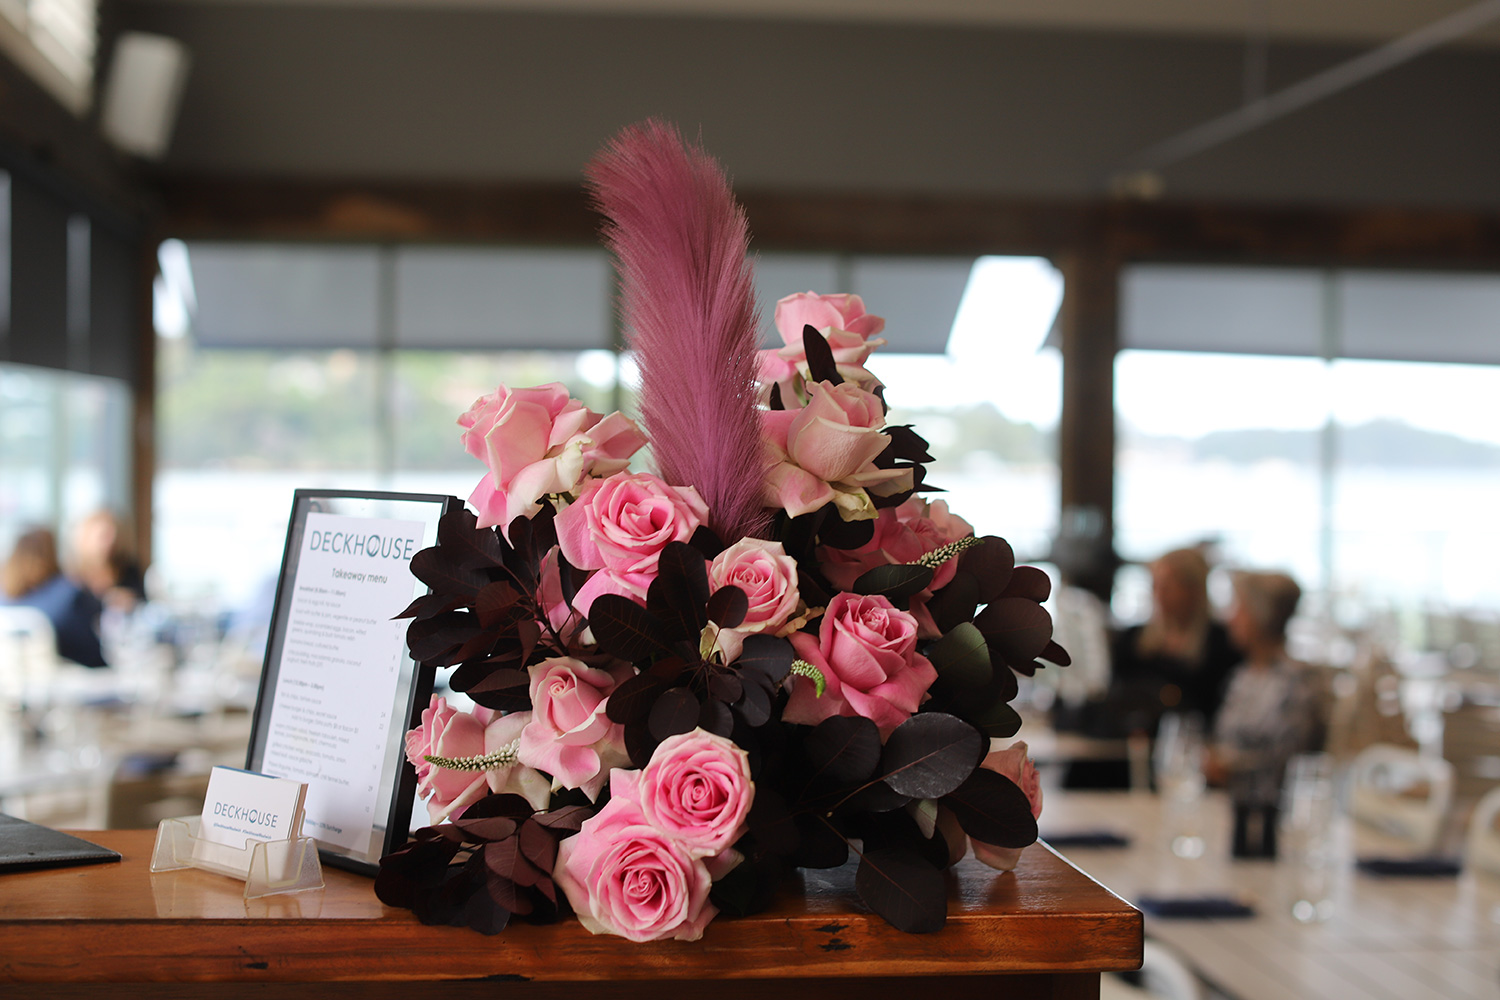 Mother's Day 2021 at Deckhouse